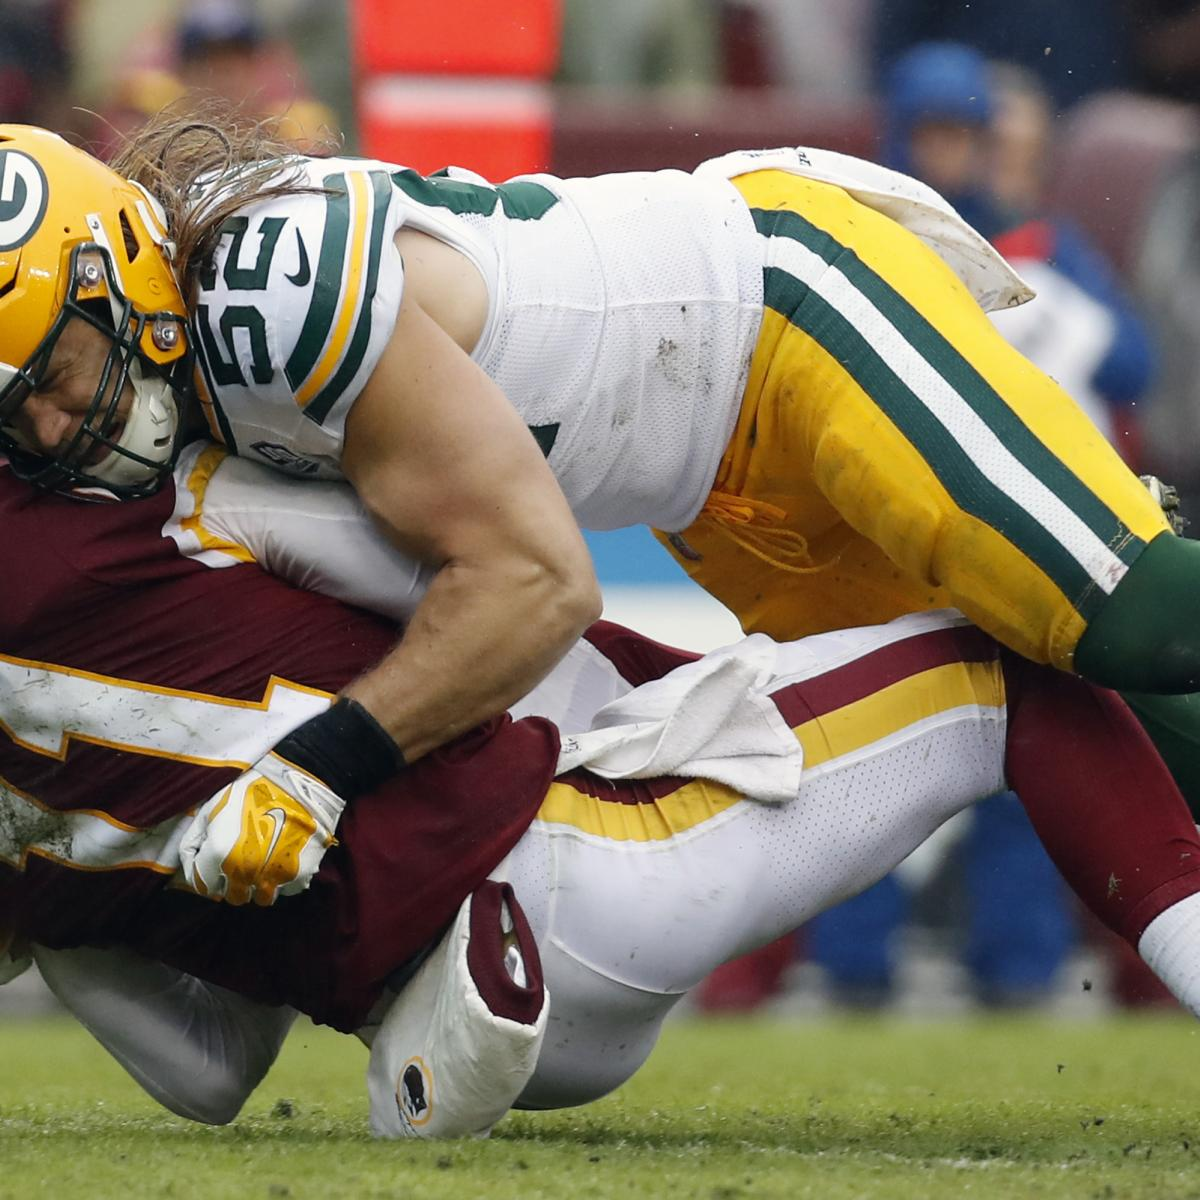 Penalty on Clay Matthews' Textbook Hit Embroils NFL in Another Rules Controversy